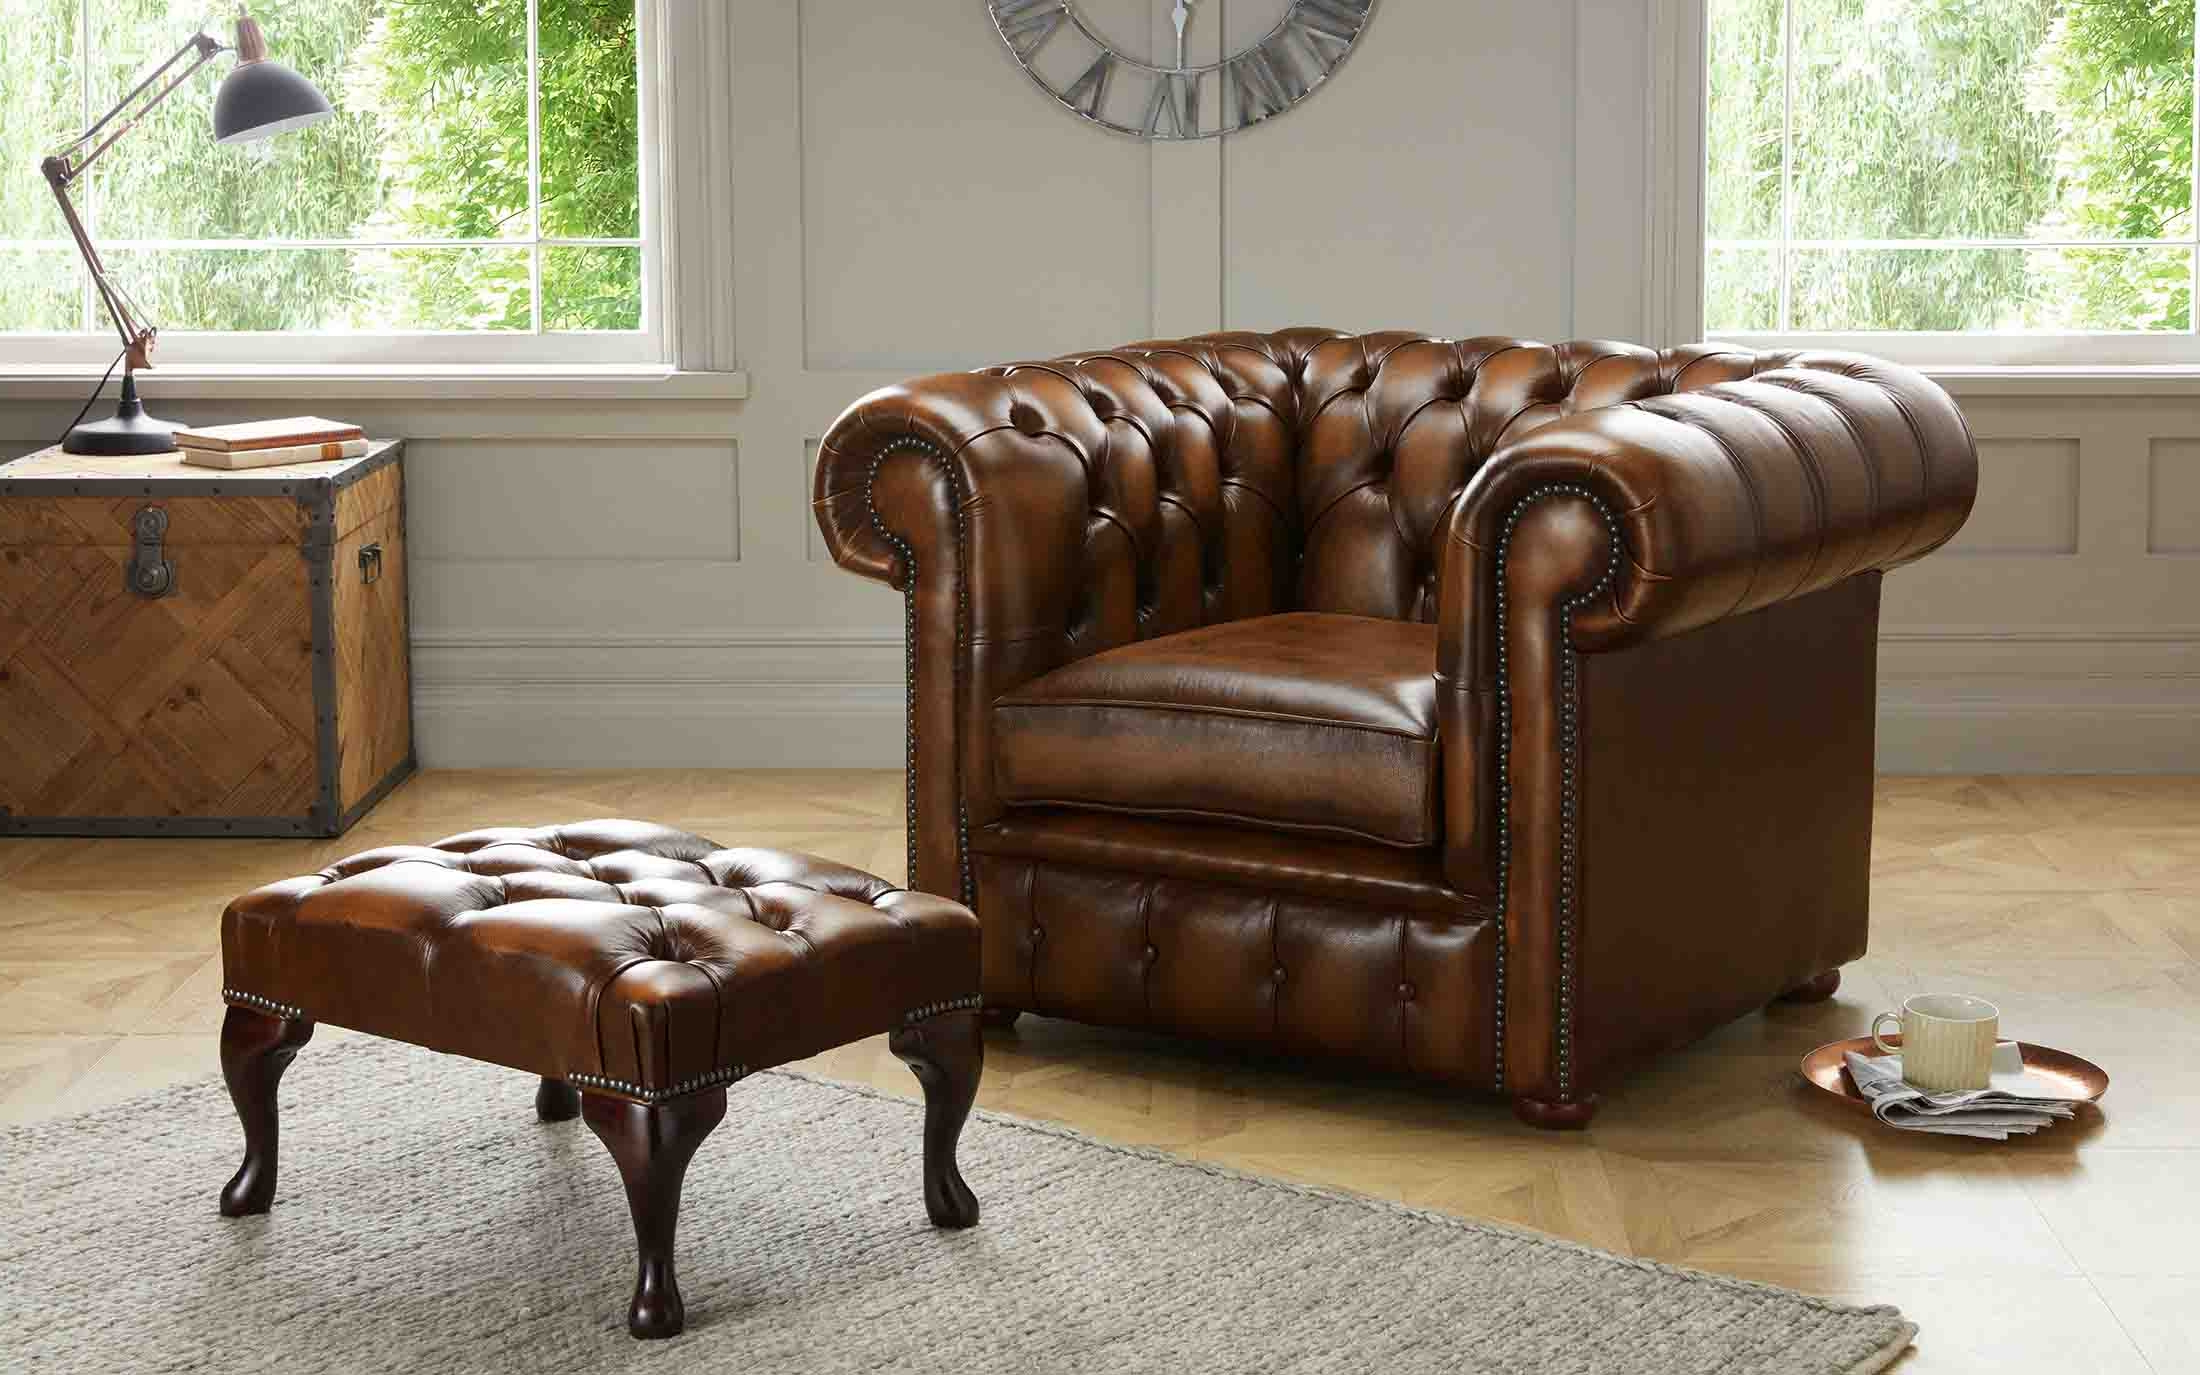 Most Recent Chesterfield Sofa And Chairs In Chesterfield Sofa And Chair For Sale (View 14 of 20)